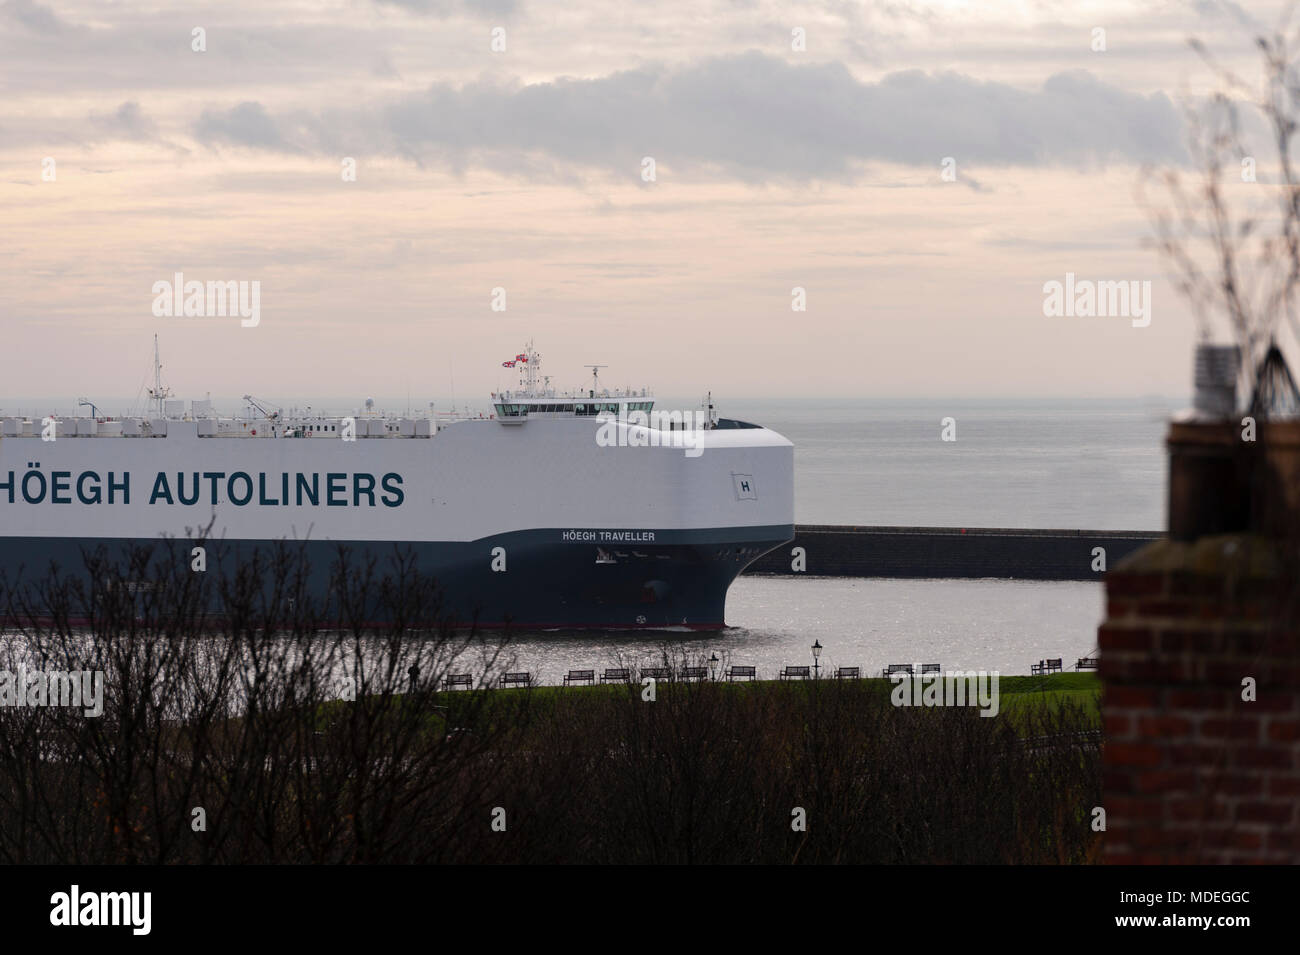 The Hoegh Traveller the autoliner arriving in the river Tyne